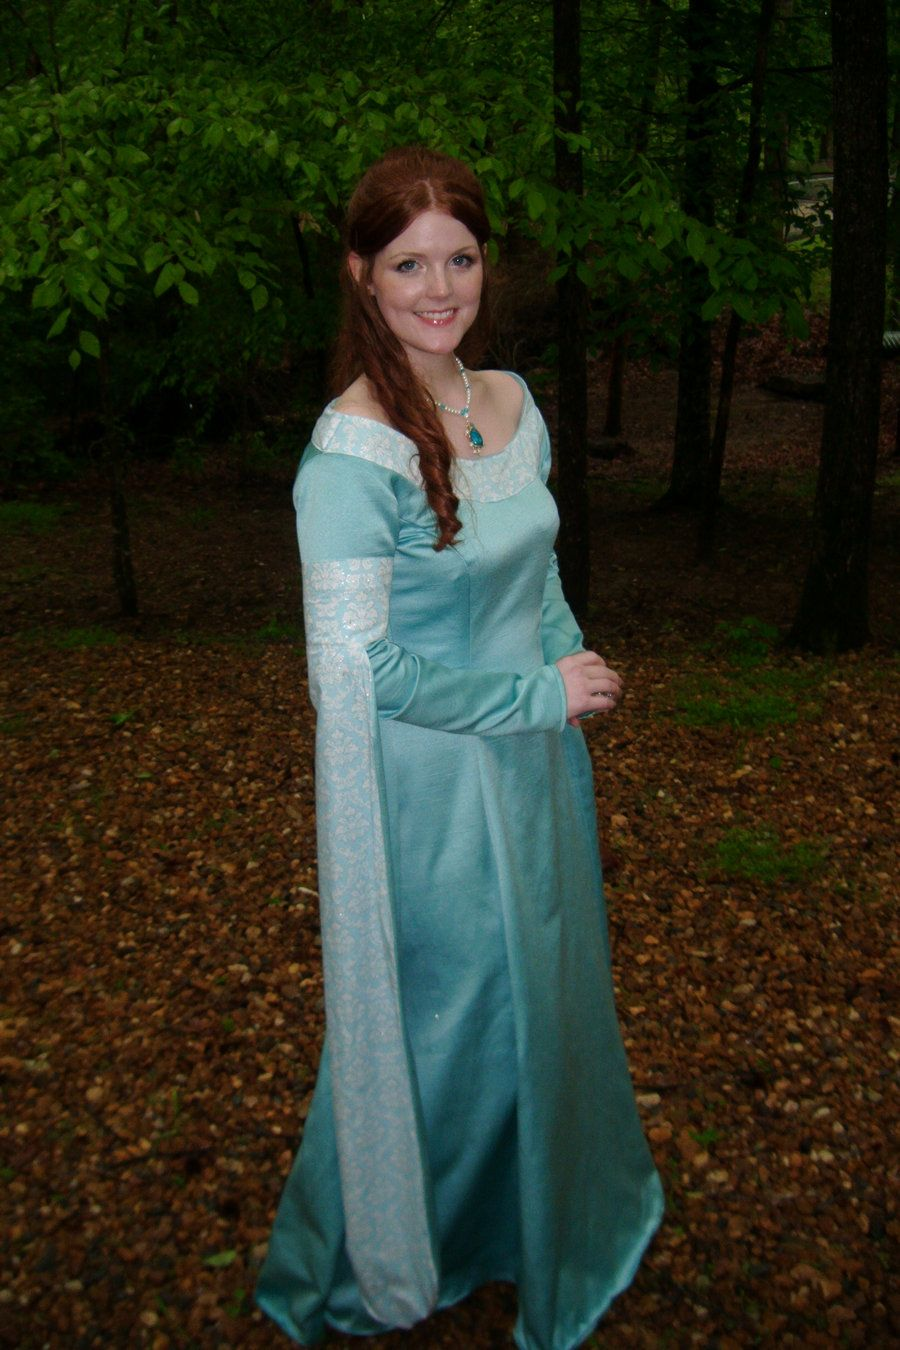 Another handmade Buttercup costume. | The Princess Bride | Pinterest ...